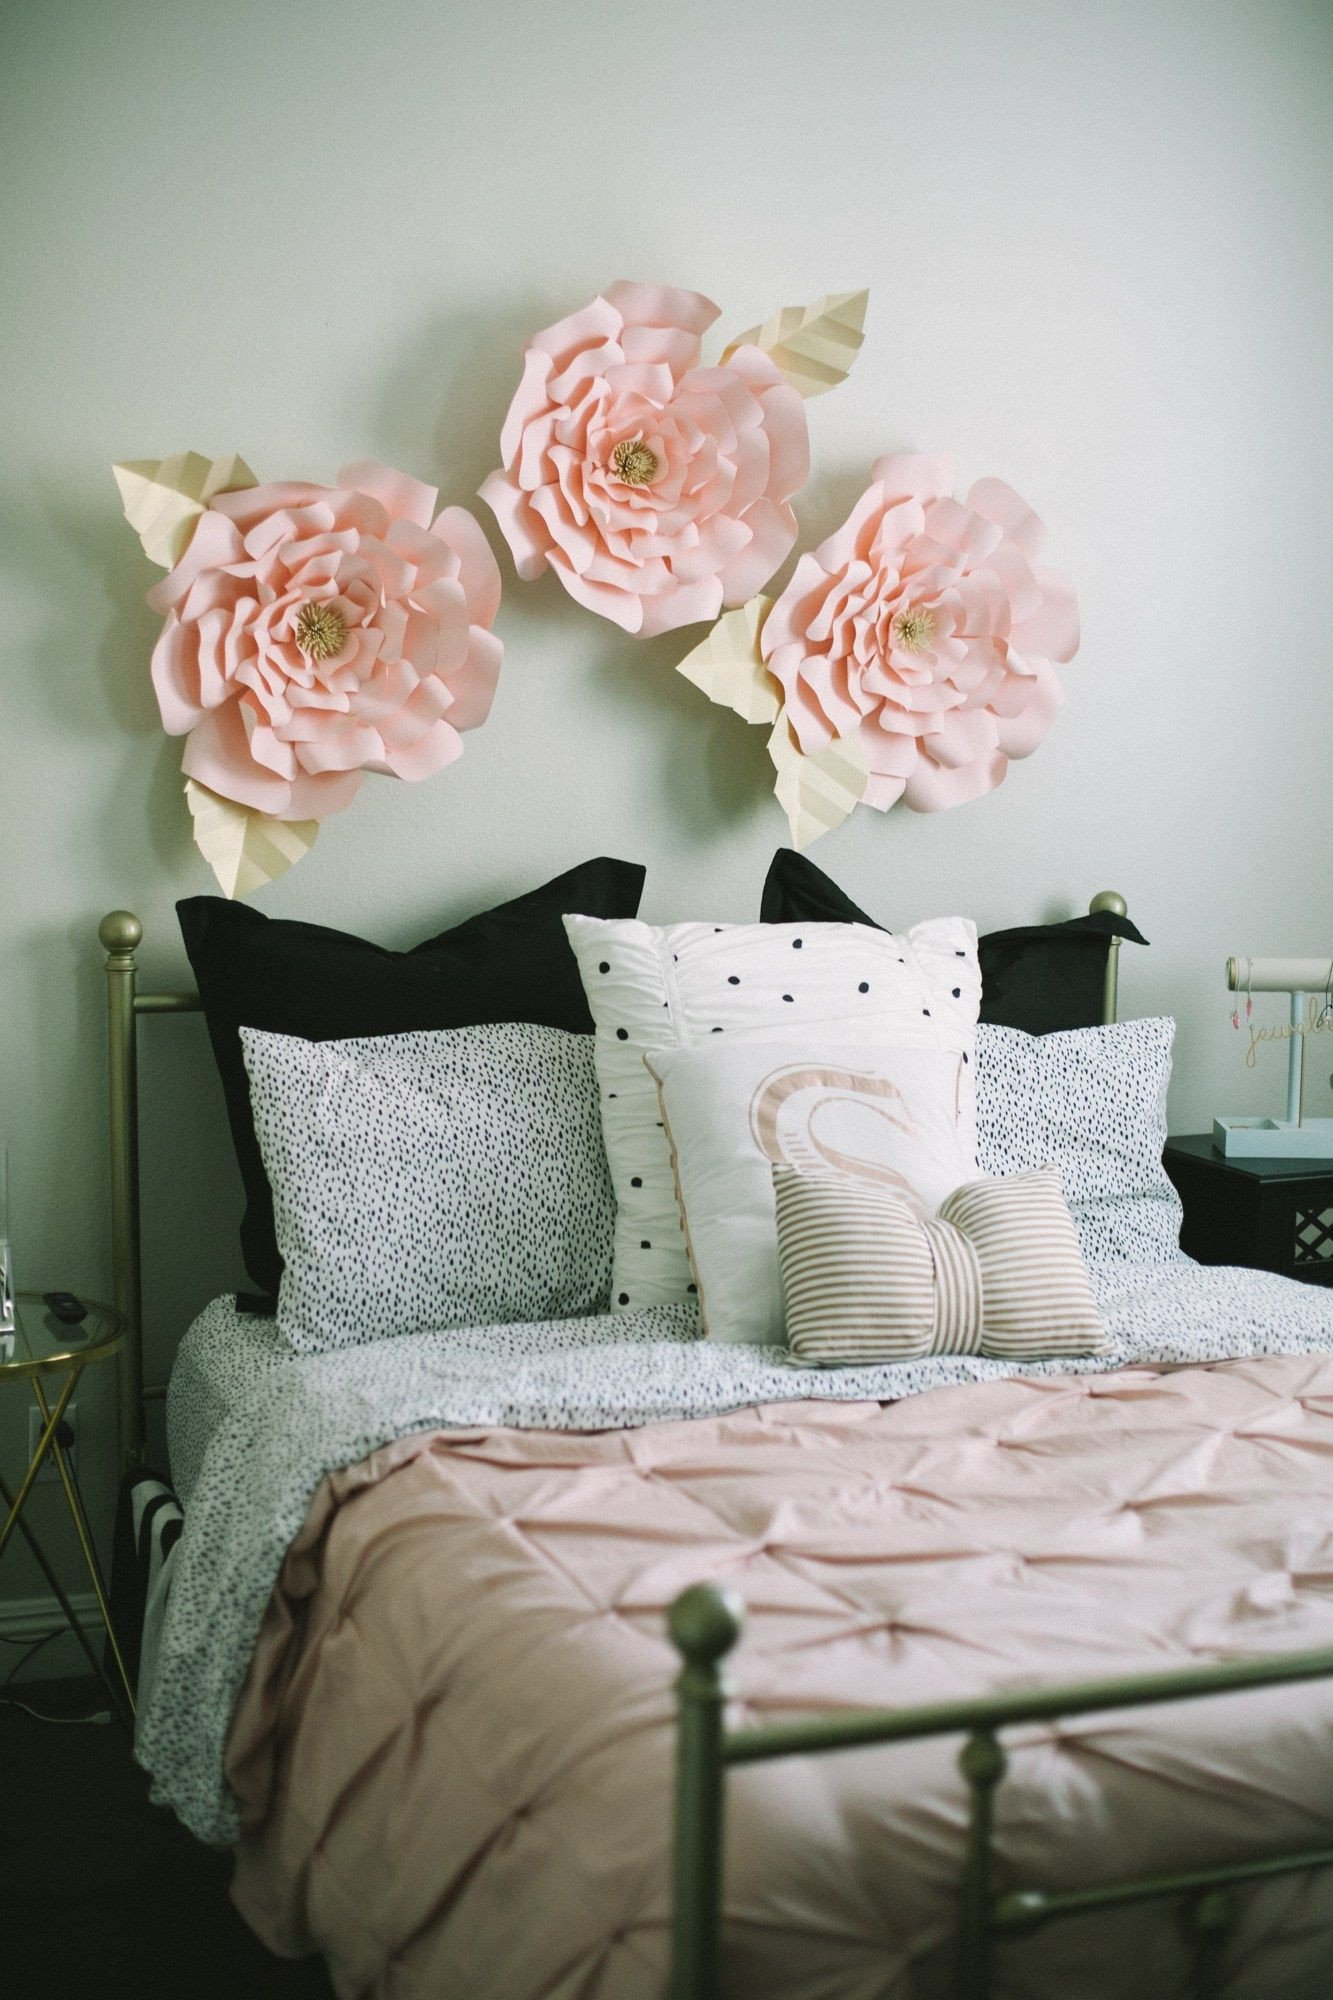 Pink and Gold Bedroom Ideas Inspirational Pin On Interior Design